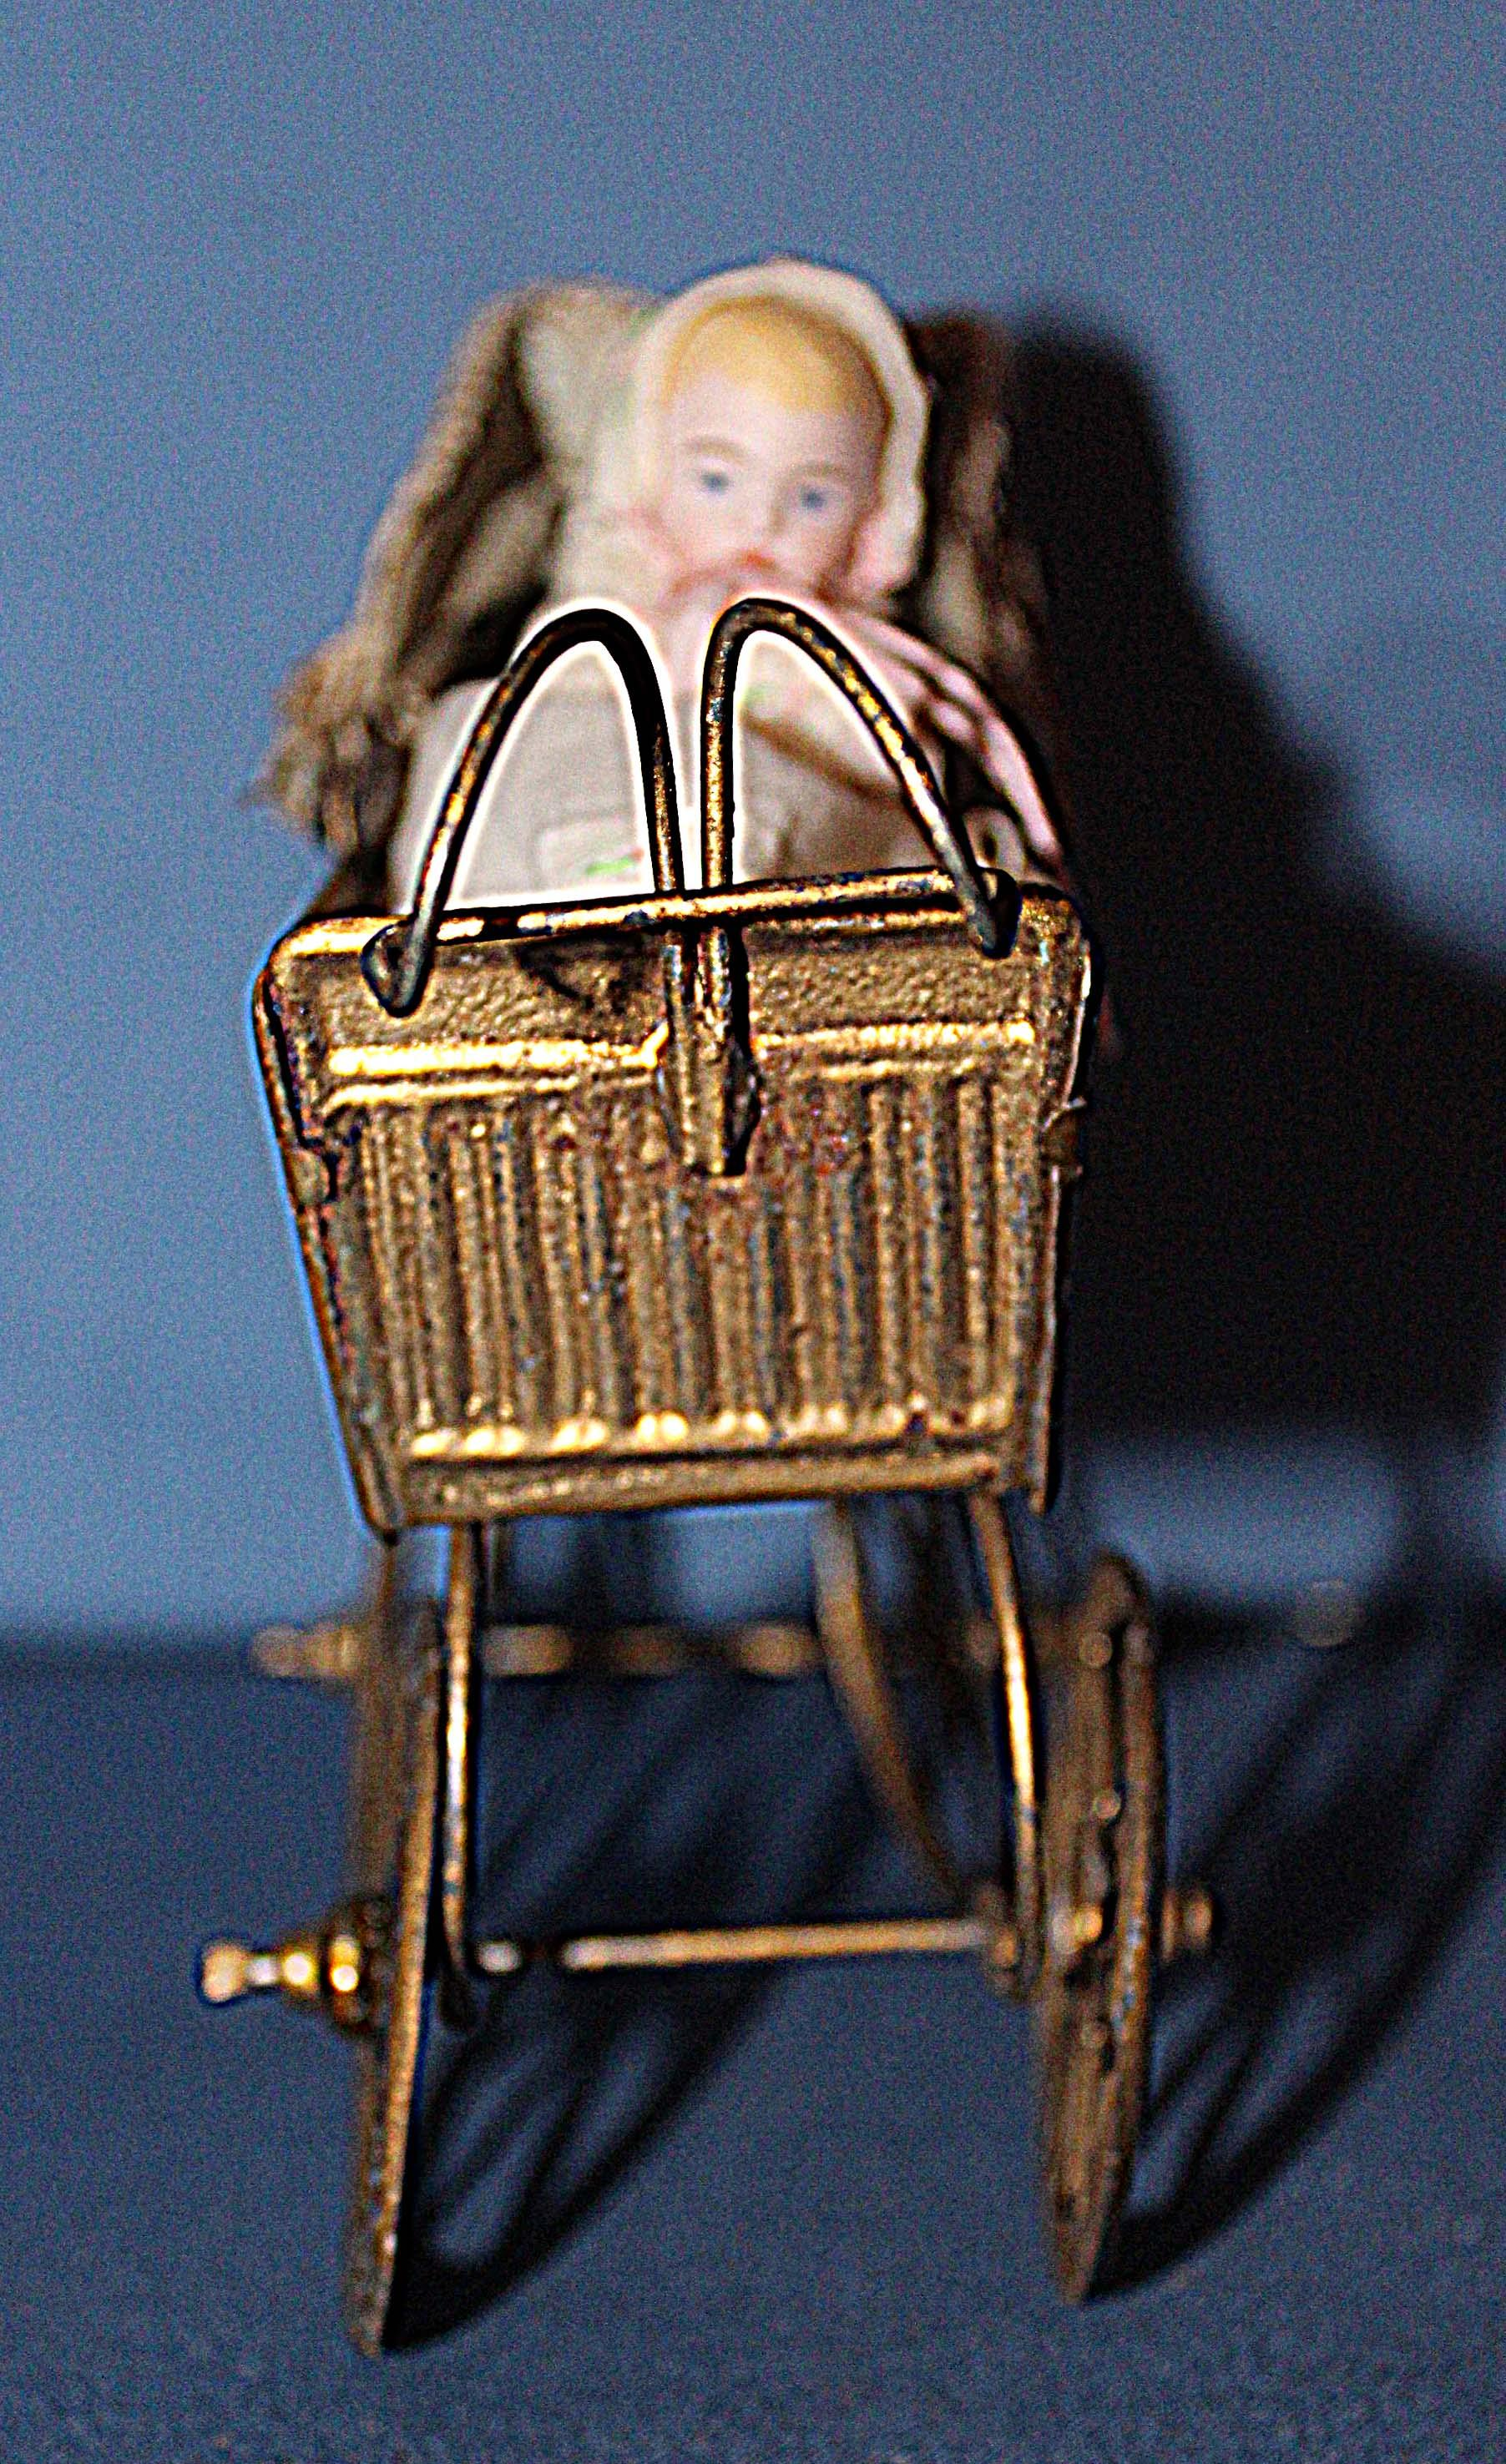 Tin Doll Carriage And Baby Doll From Sarabernsteindolls On